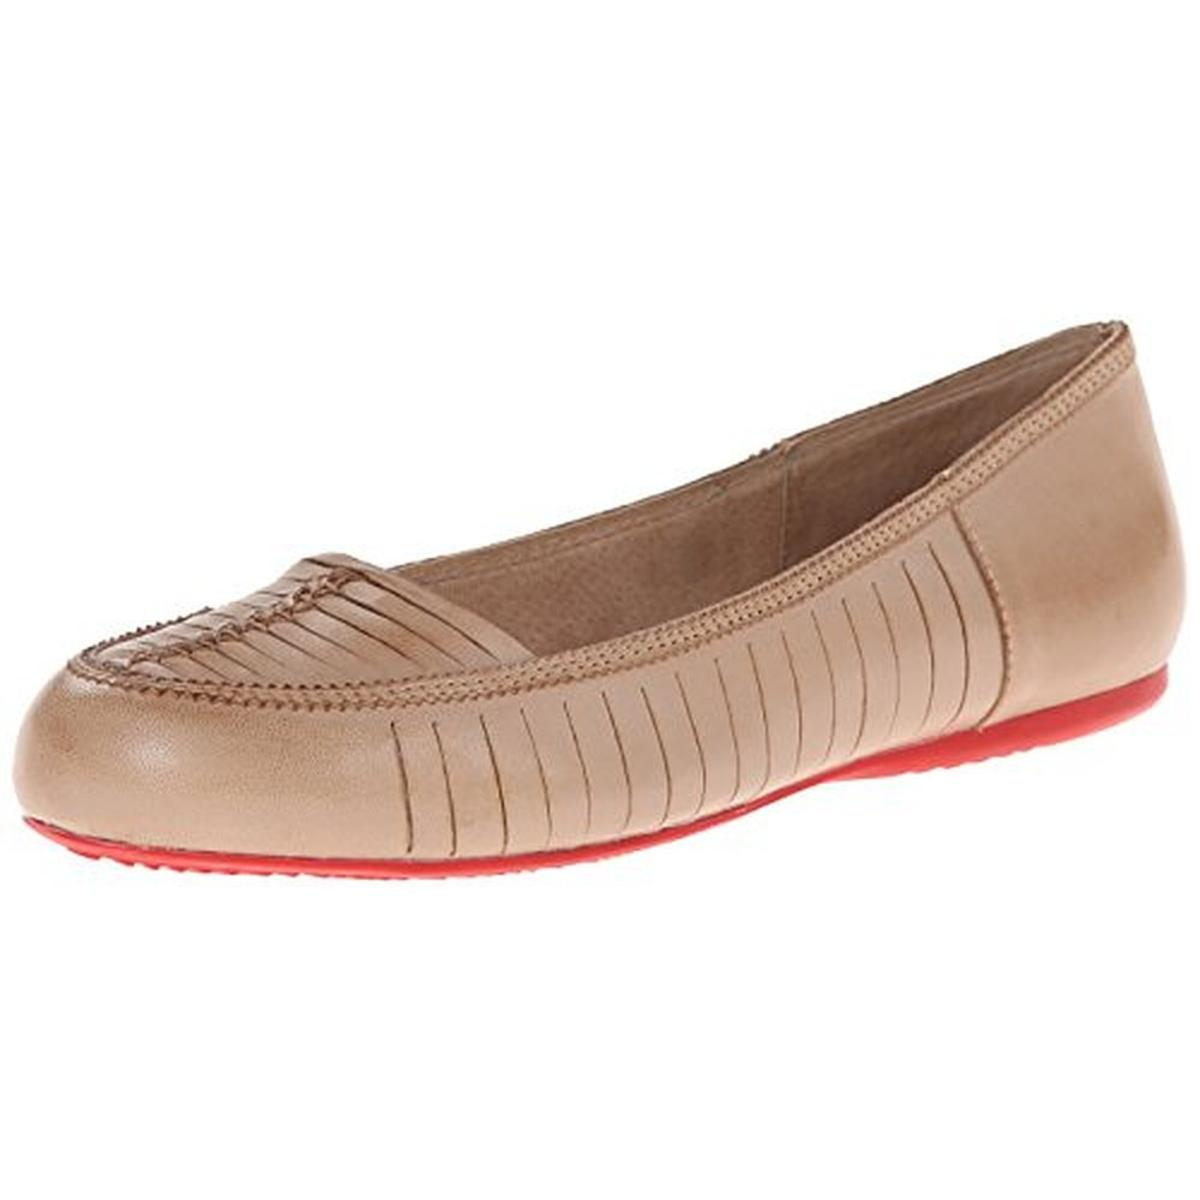 SoftWalk Womens Natchez Leather Round Toe Flats by SoftWalk